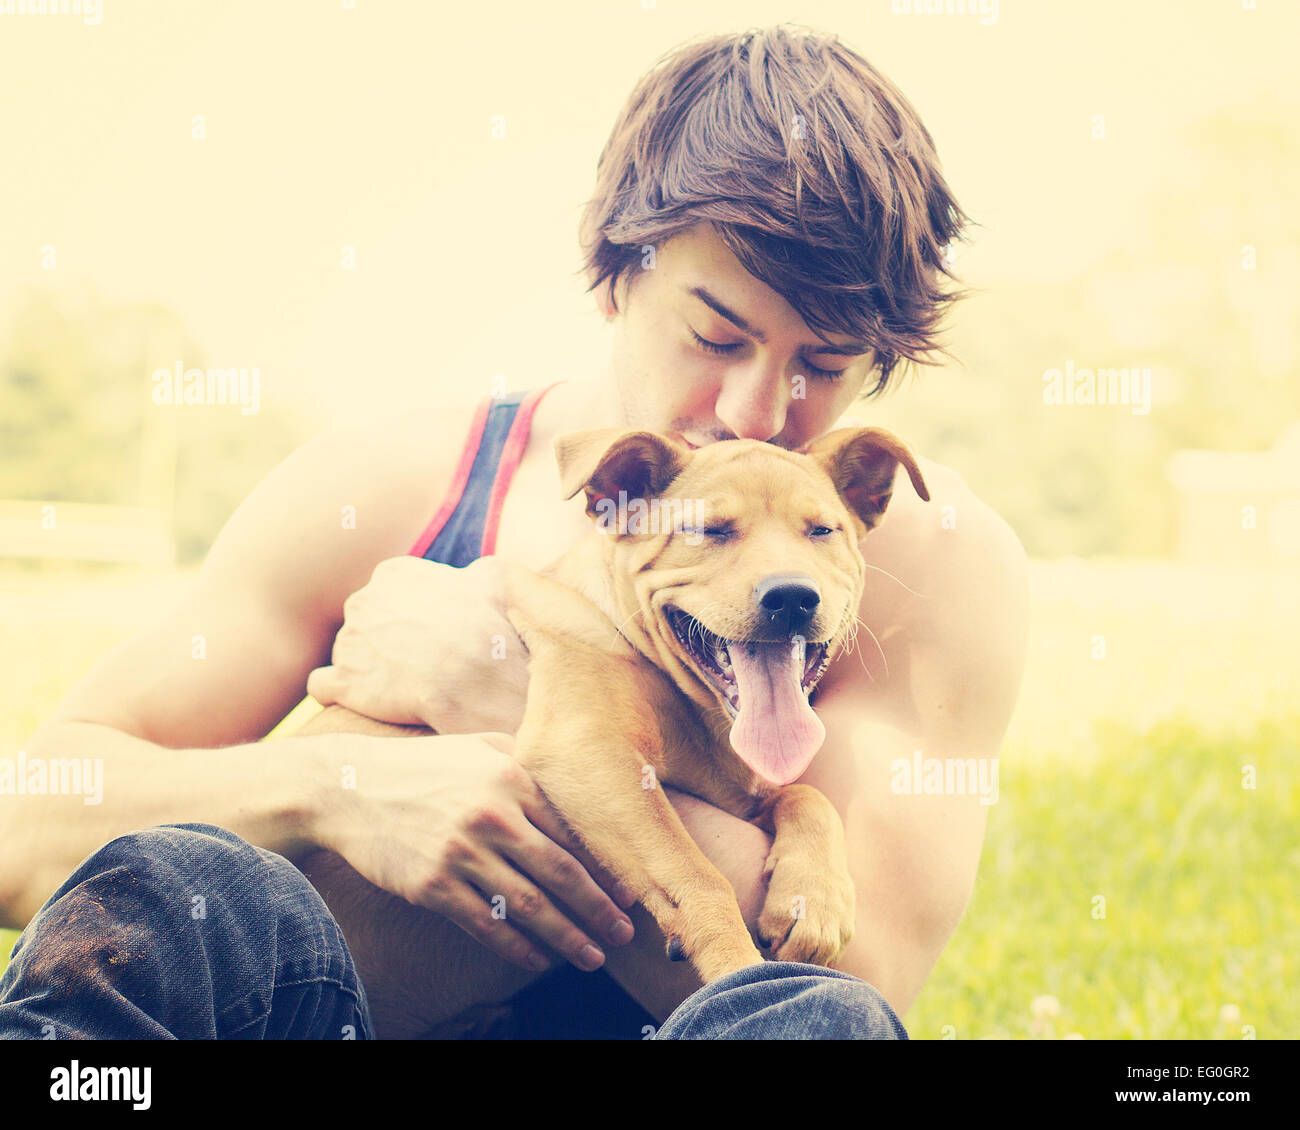 Young man holding puppy outdoors - Stock Image